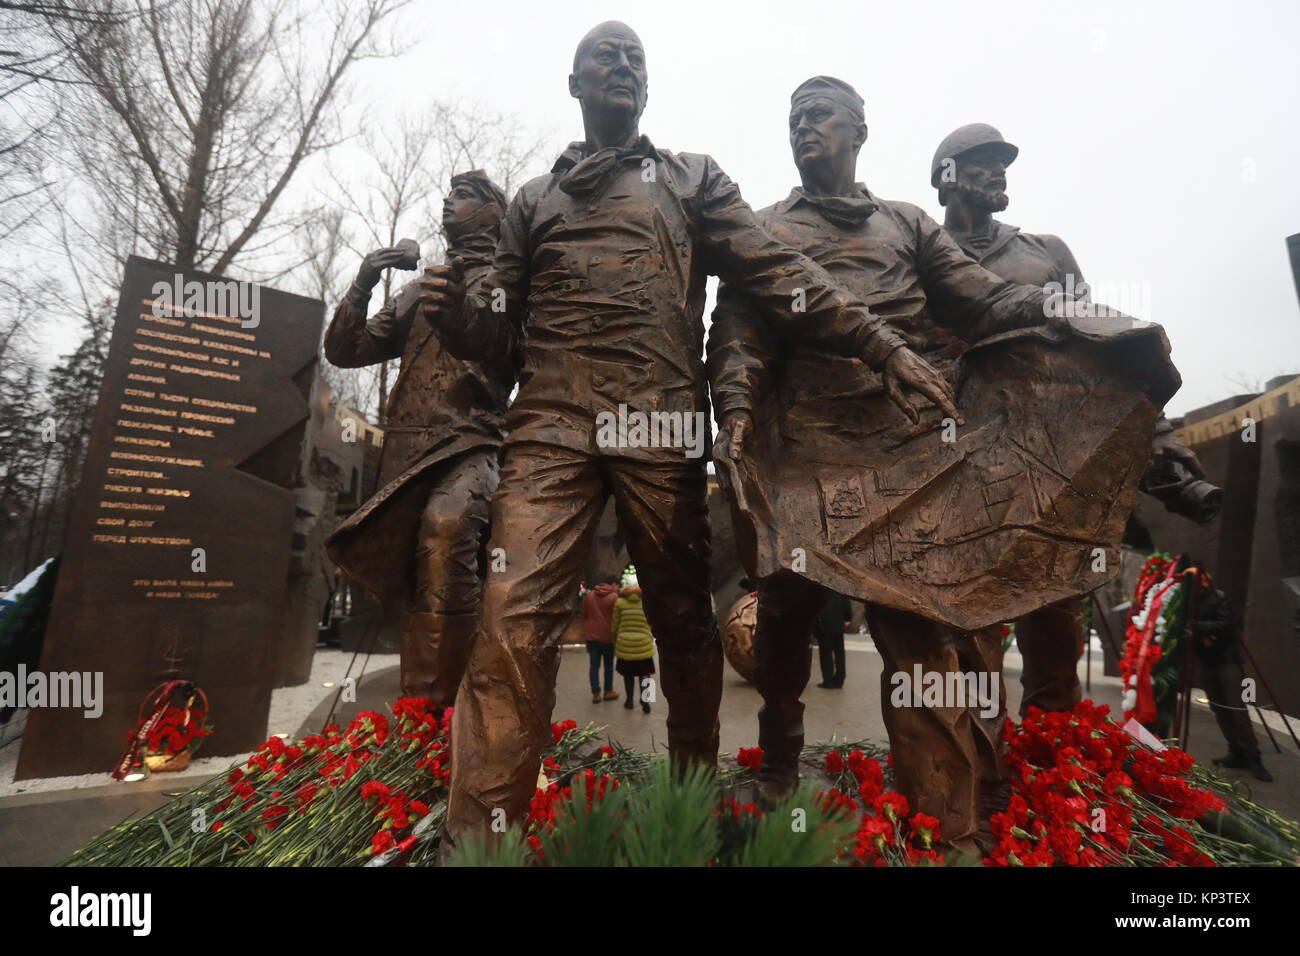 Moscow, Russia. 13th Dec, 2017. Flowers seen on a monument to 'Chernobyl liquidators', people who took part - Stock Image